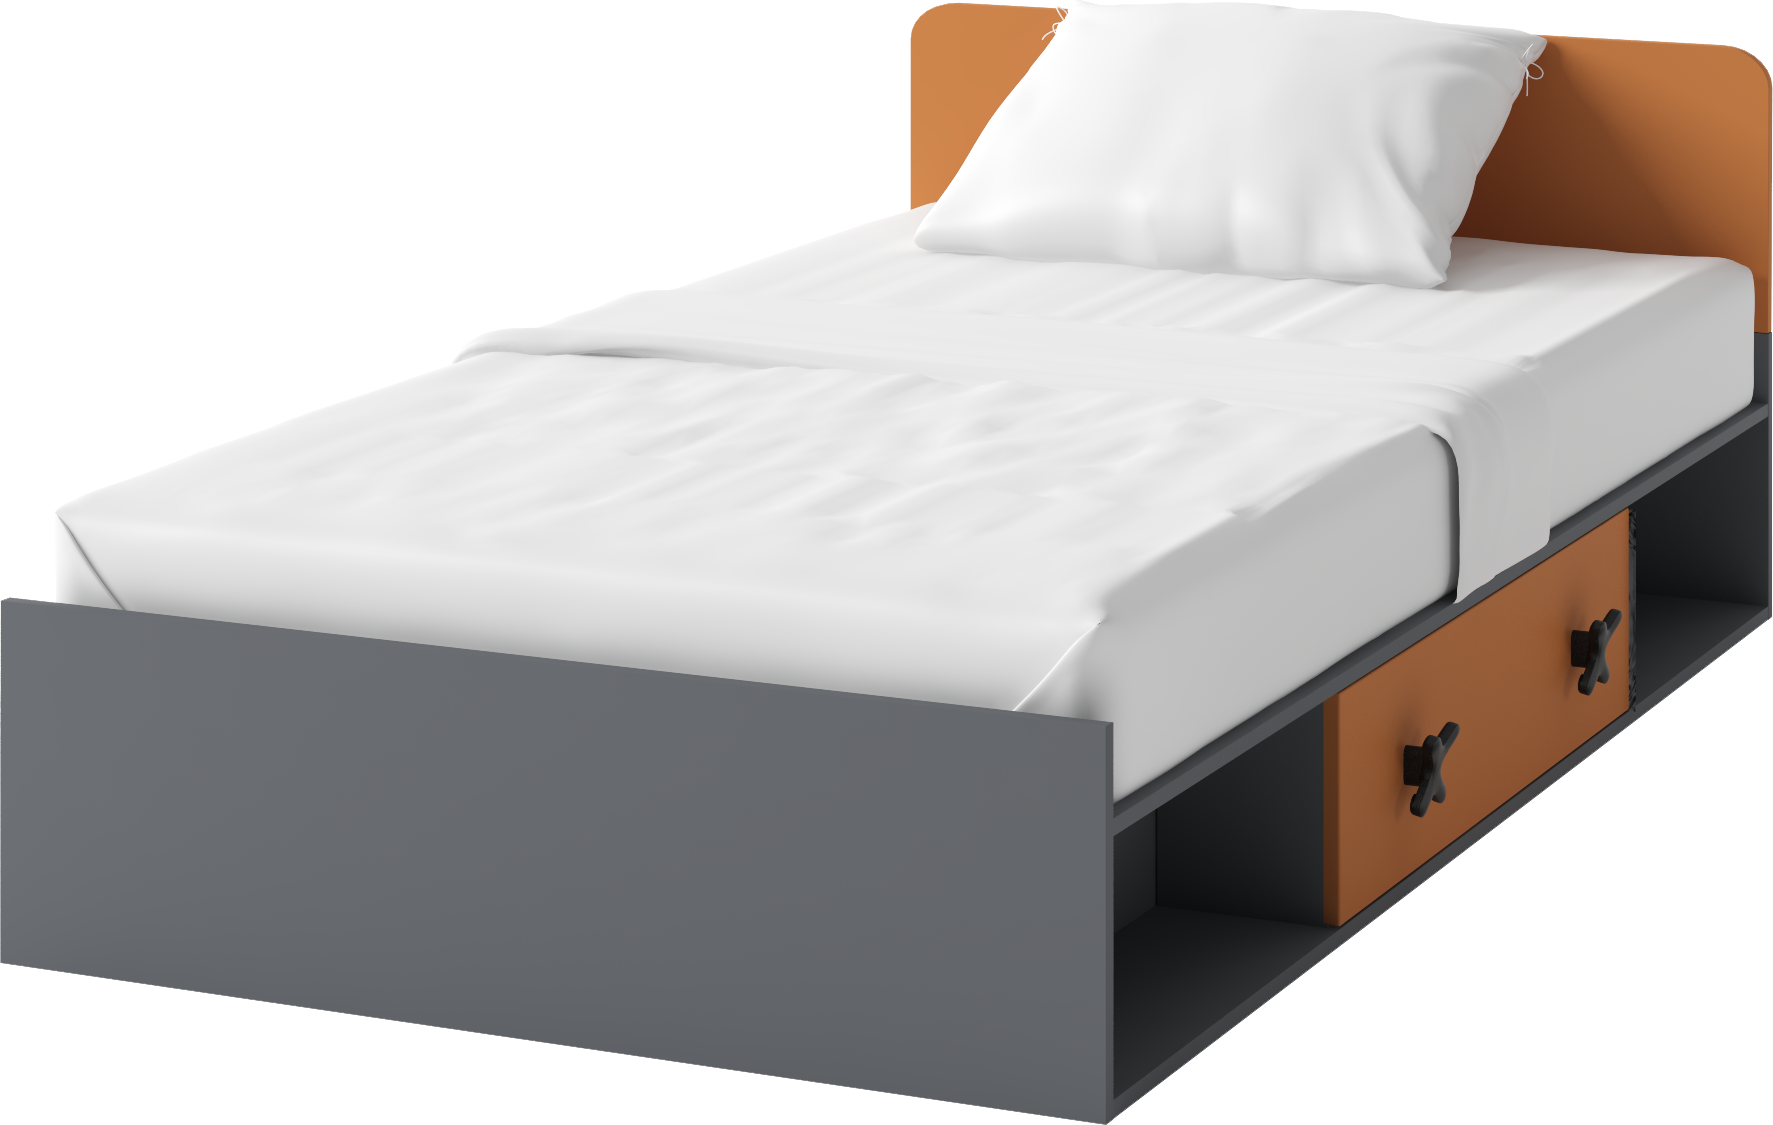 Hospital Bed, Sleep, Soft, Cover, Bed Sheet, Png Photo 2845